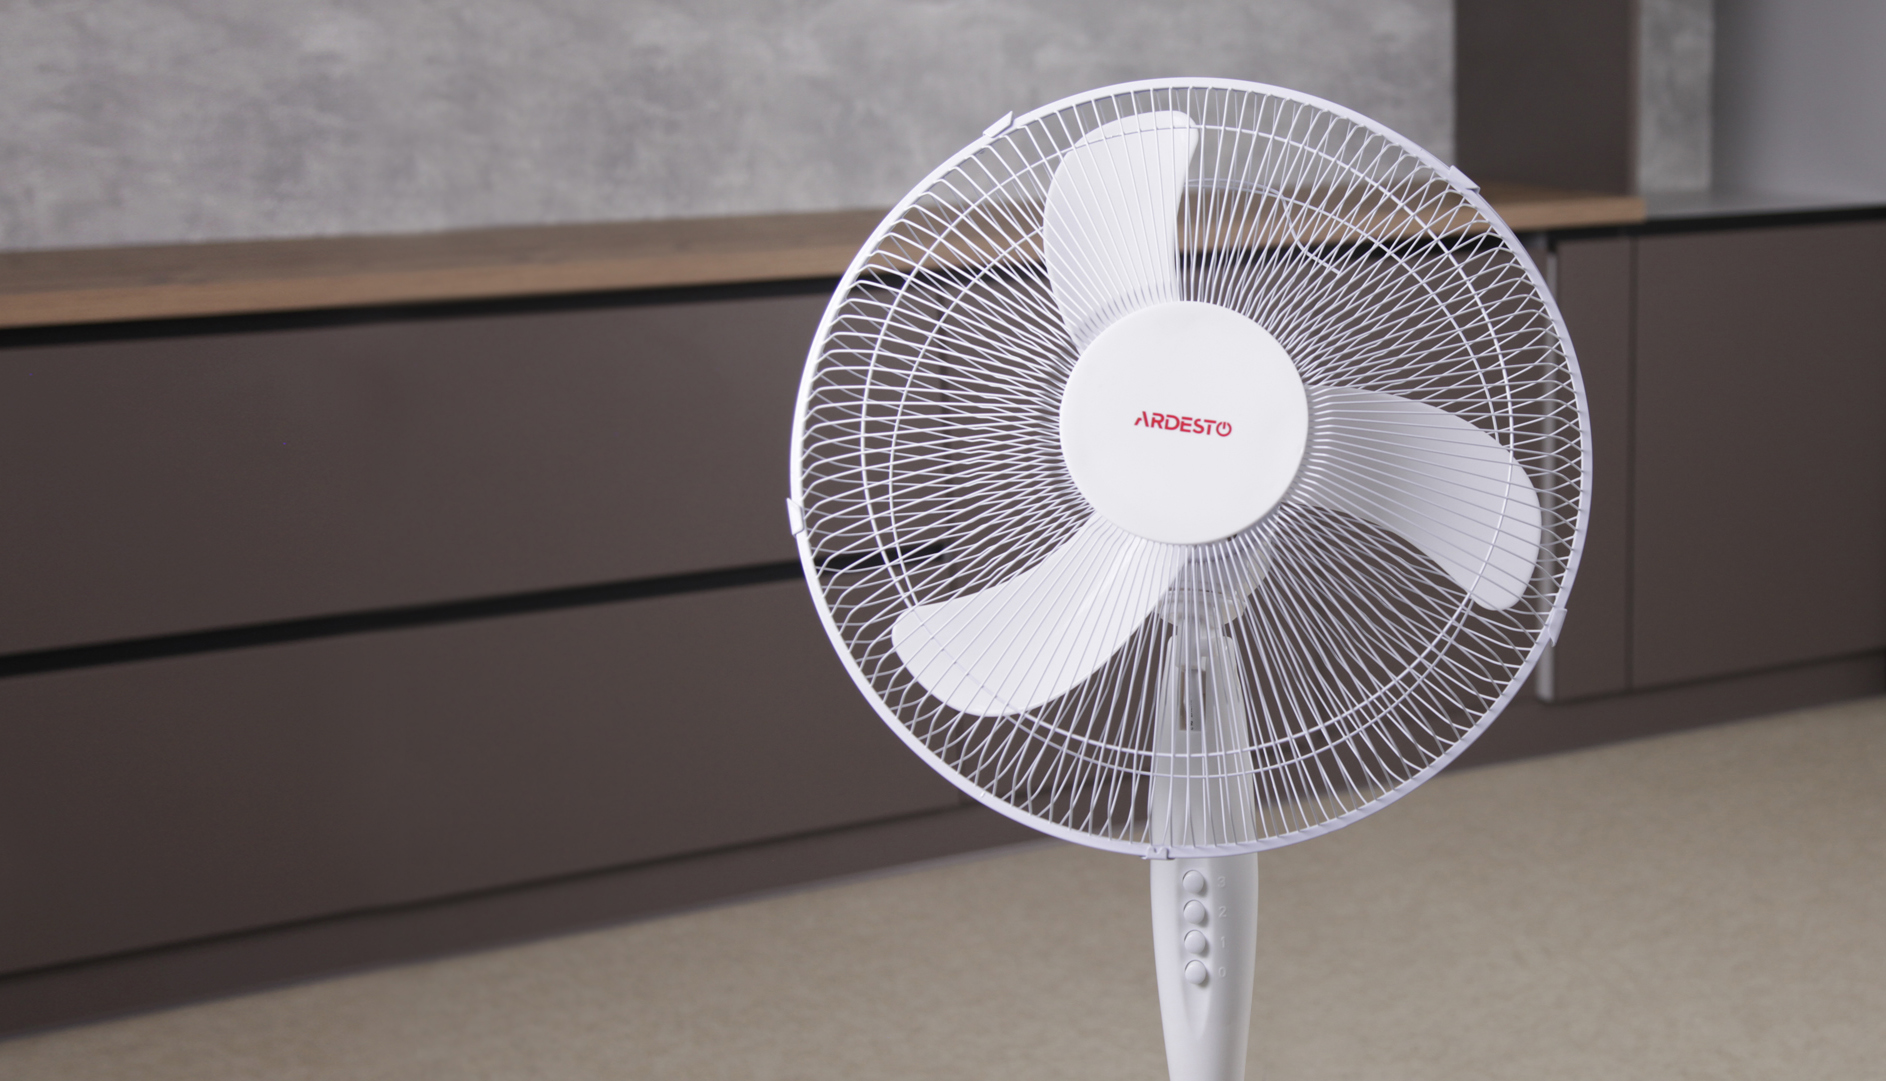 Ardesto standing fan – beat the heat